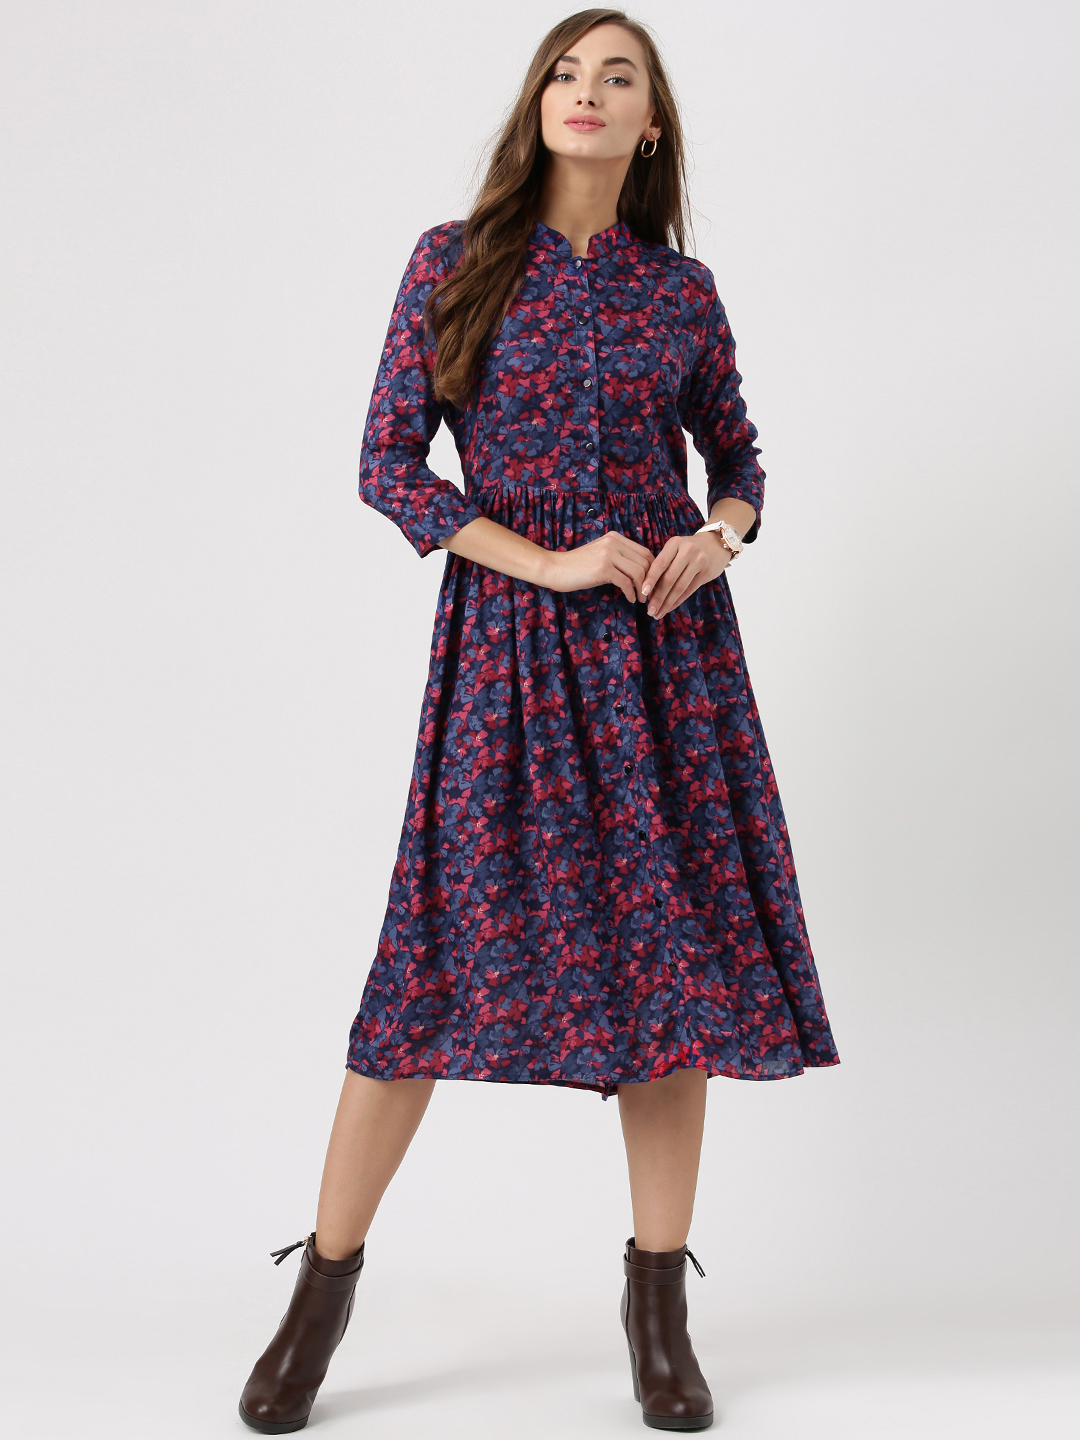 western wear for women marie claire women blue floral print fit u0026 flare dress FPFTJFS